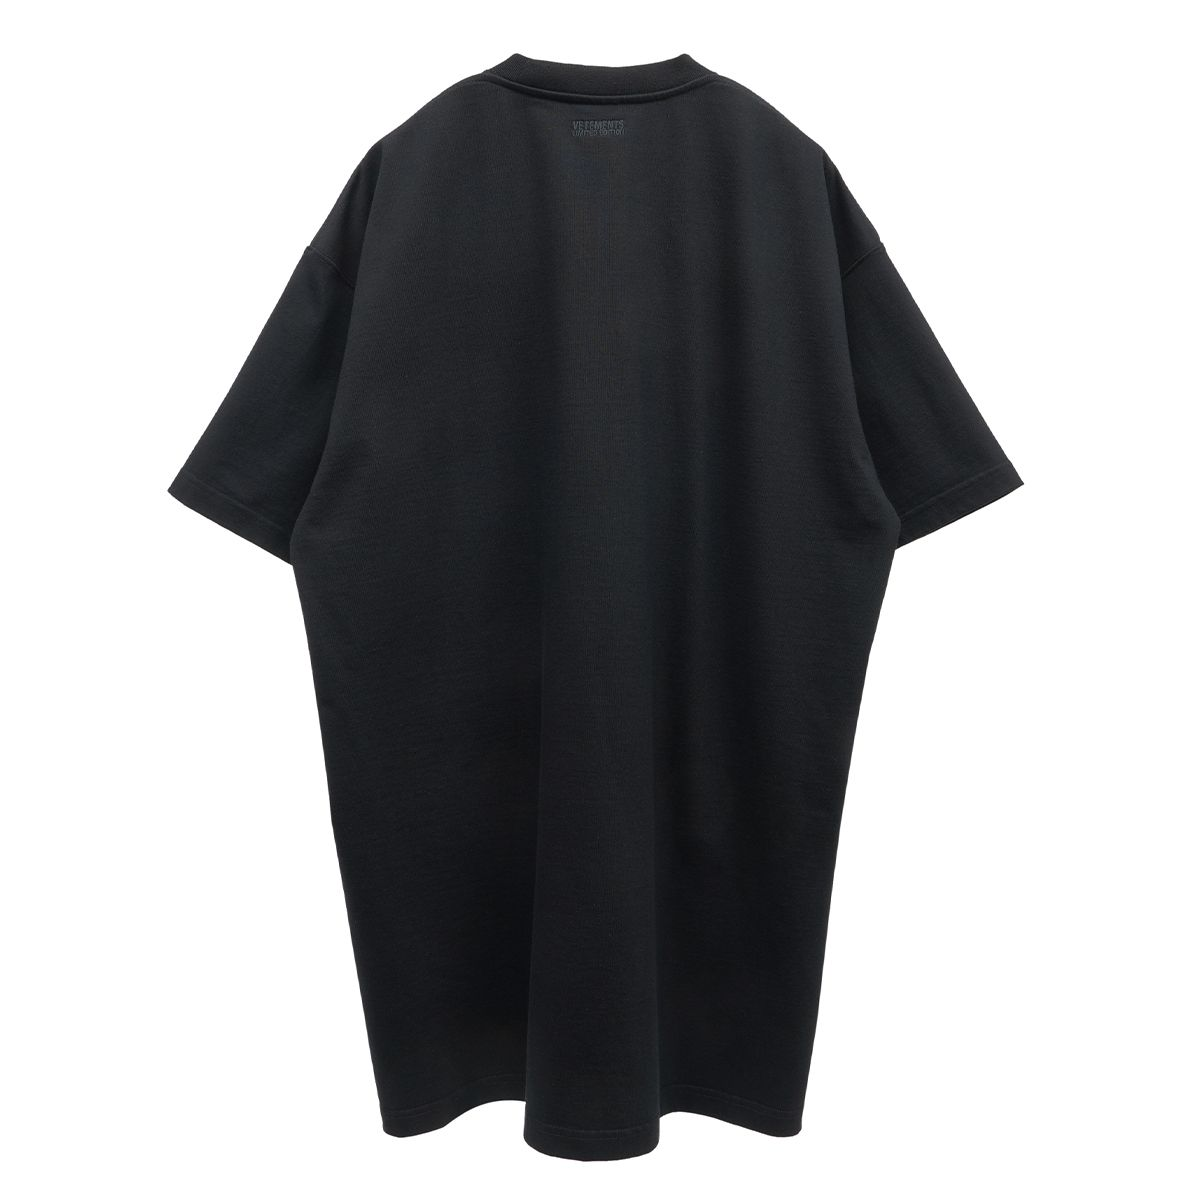 VETEMENTS SWEET LOGO T-SHIRT / BLACK